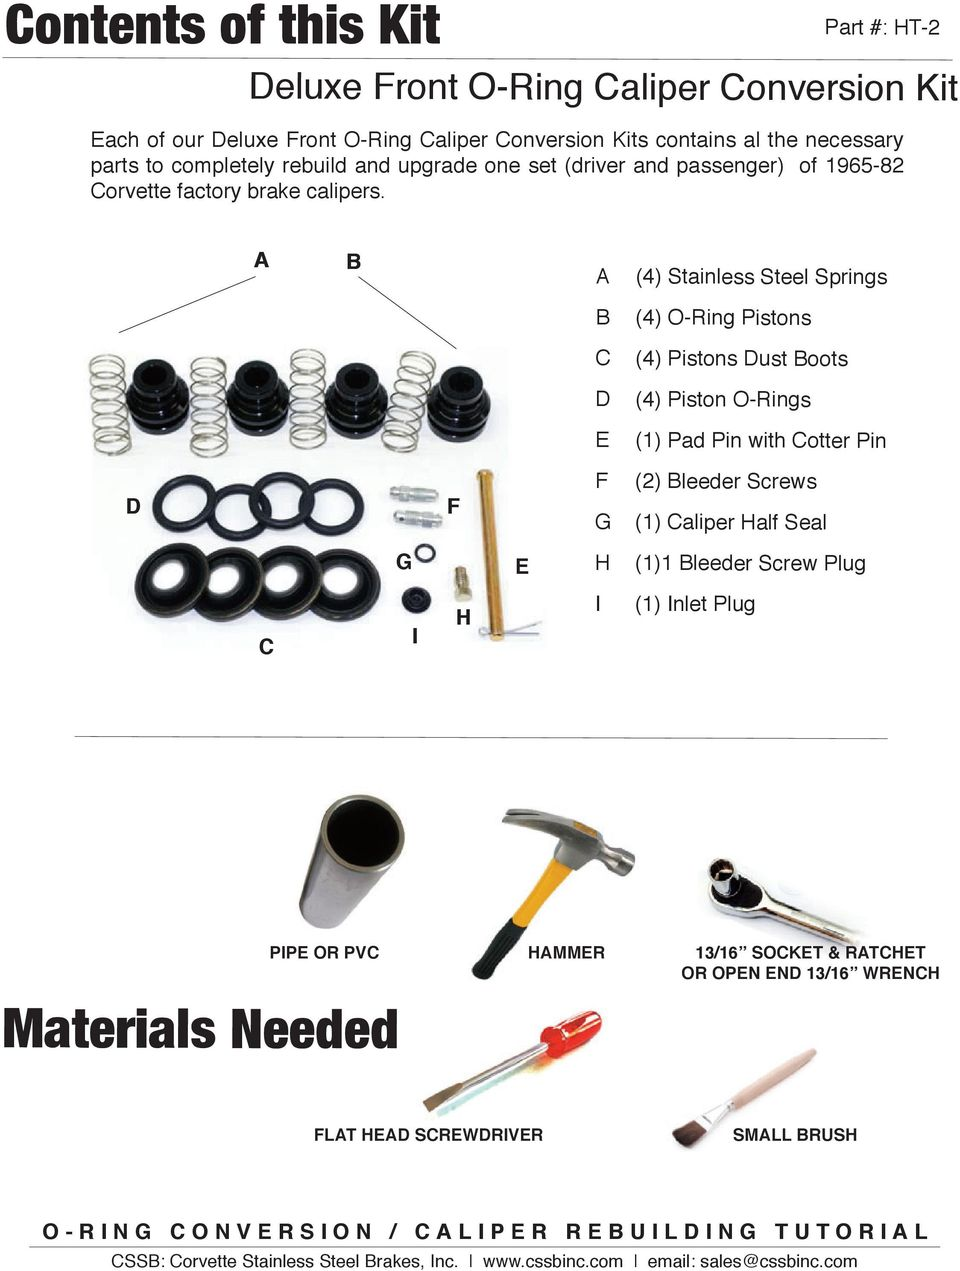 a b A (4) Stainless Steel Springs B (4) O-Ring Pistons C (4) Pistons Dust Boots D (4) Piston O-Rings E (1) Pad Pin with Cotter Pin d F F (2) Bleeder Screws